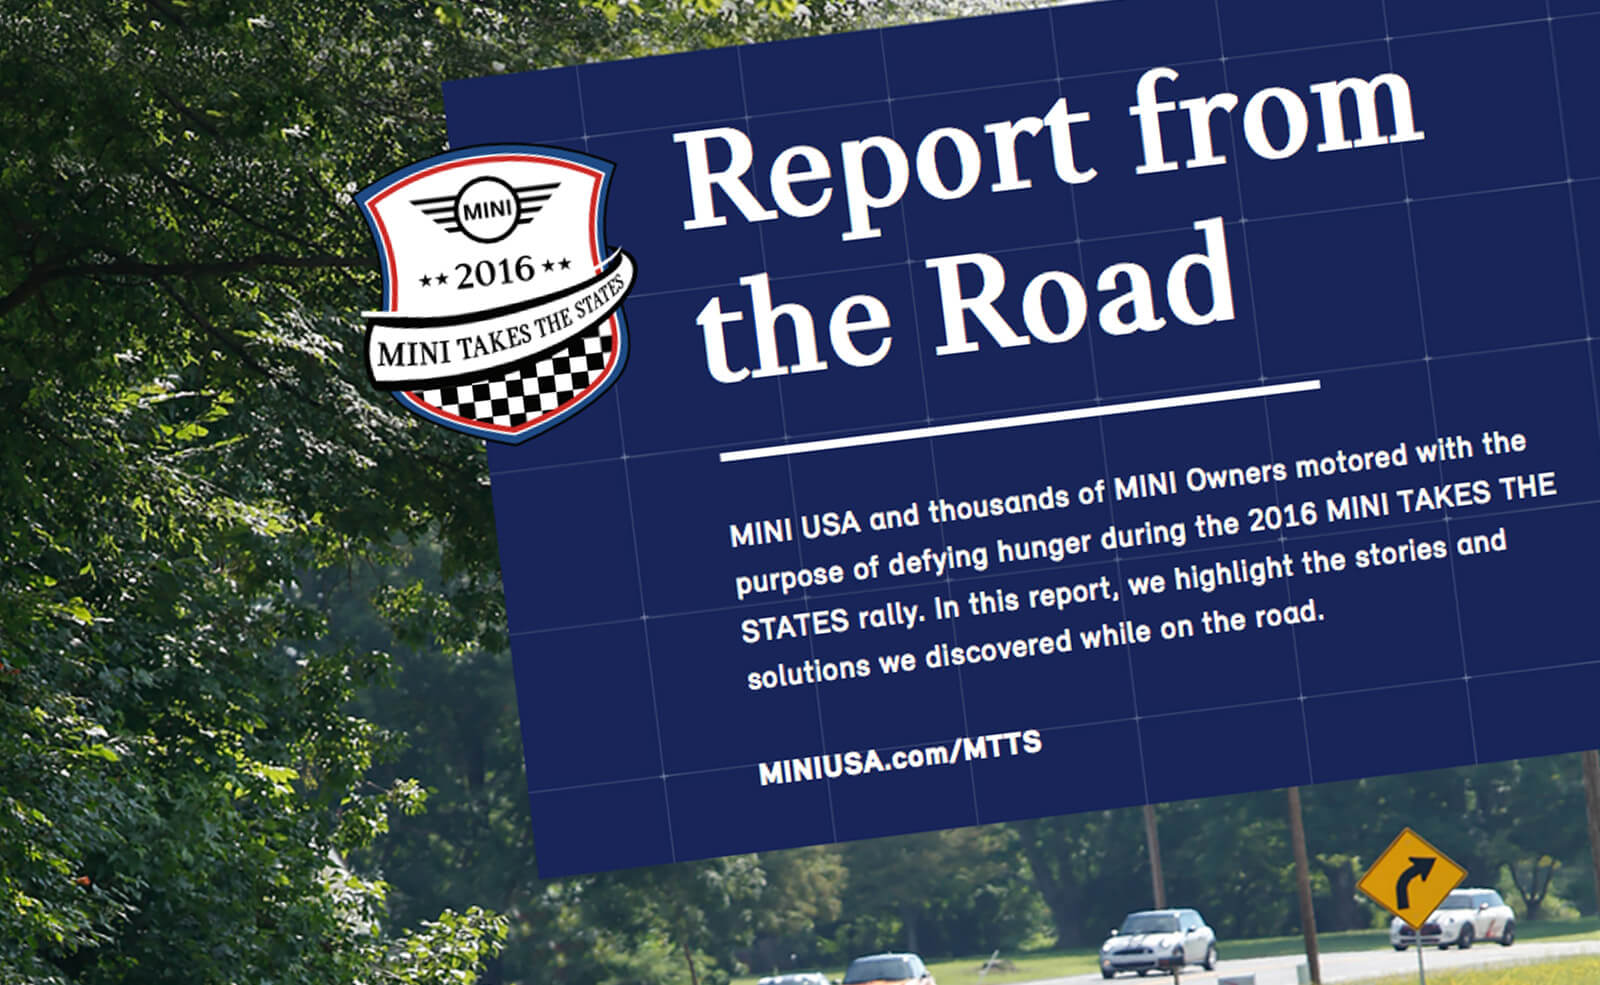 Report from the Road